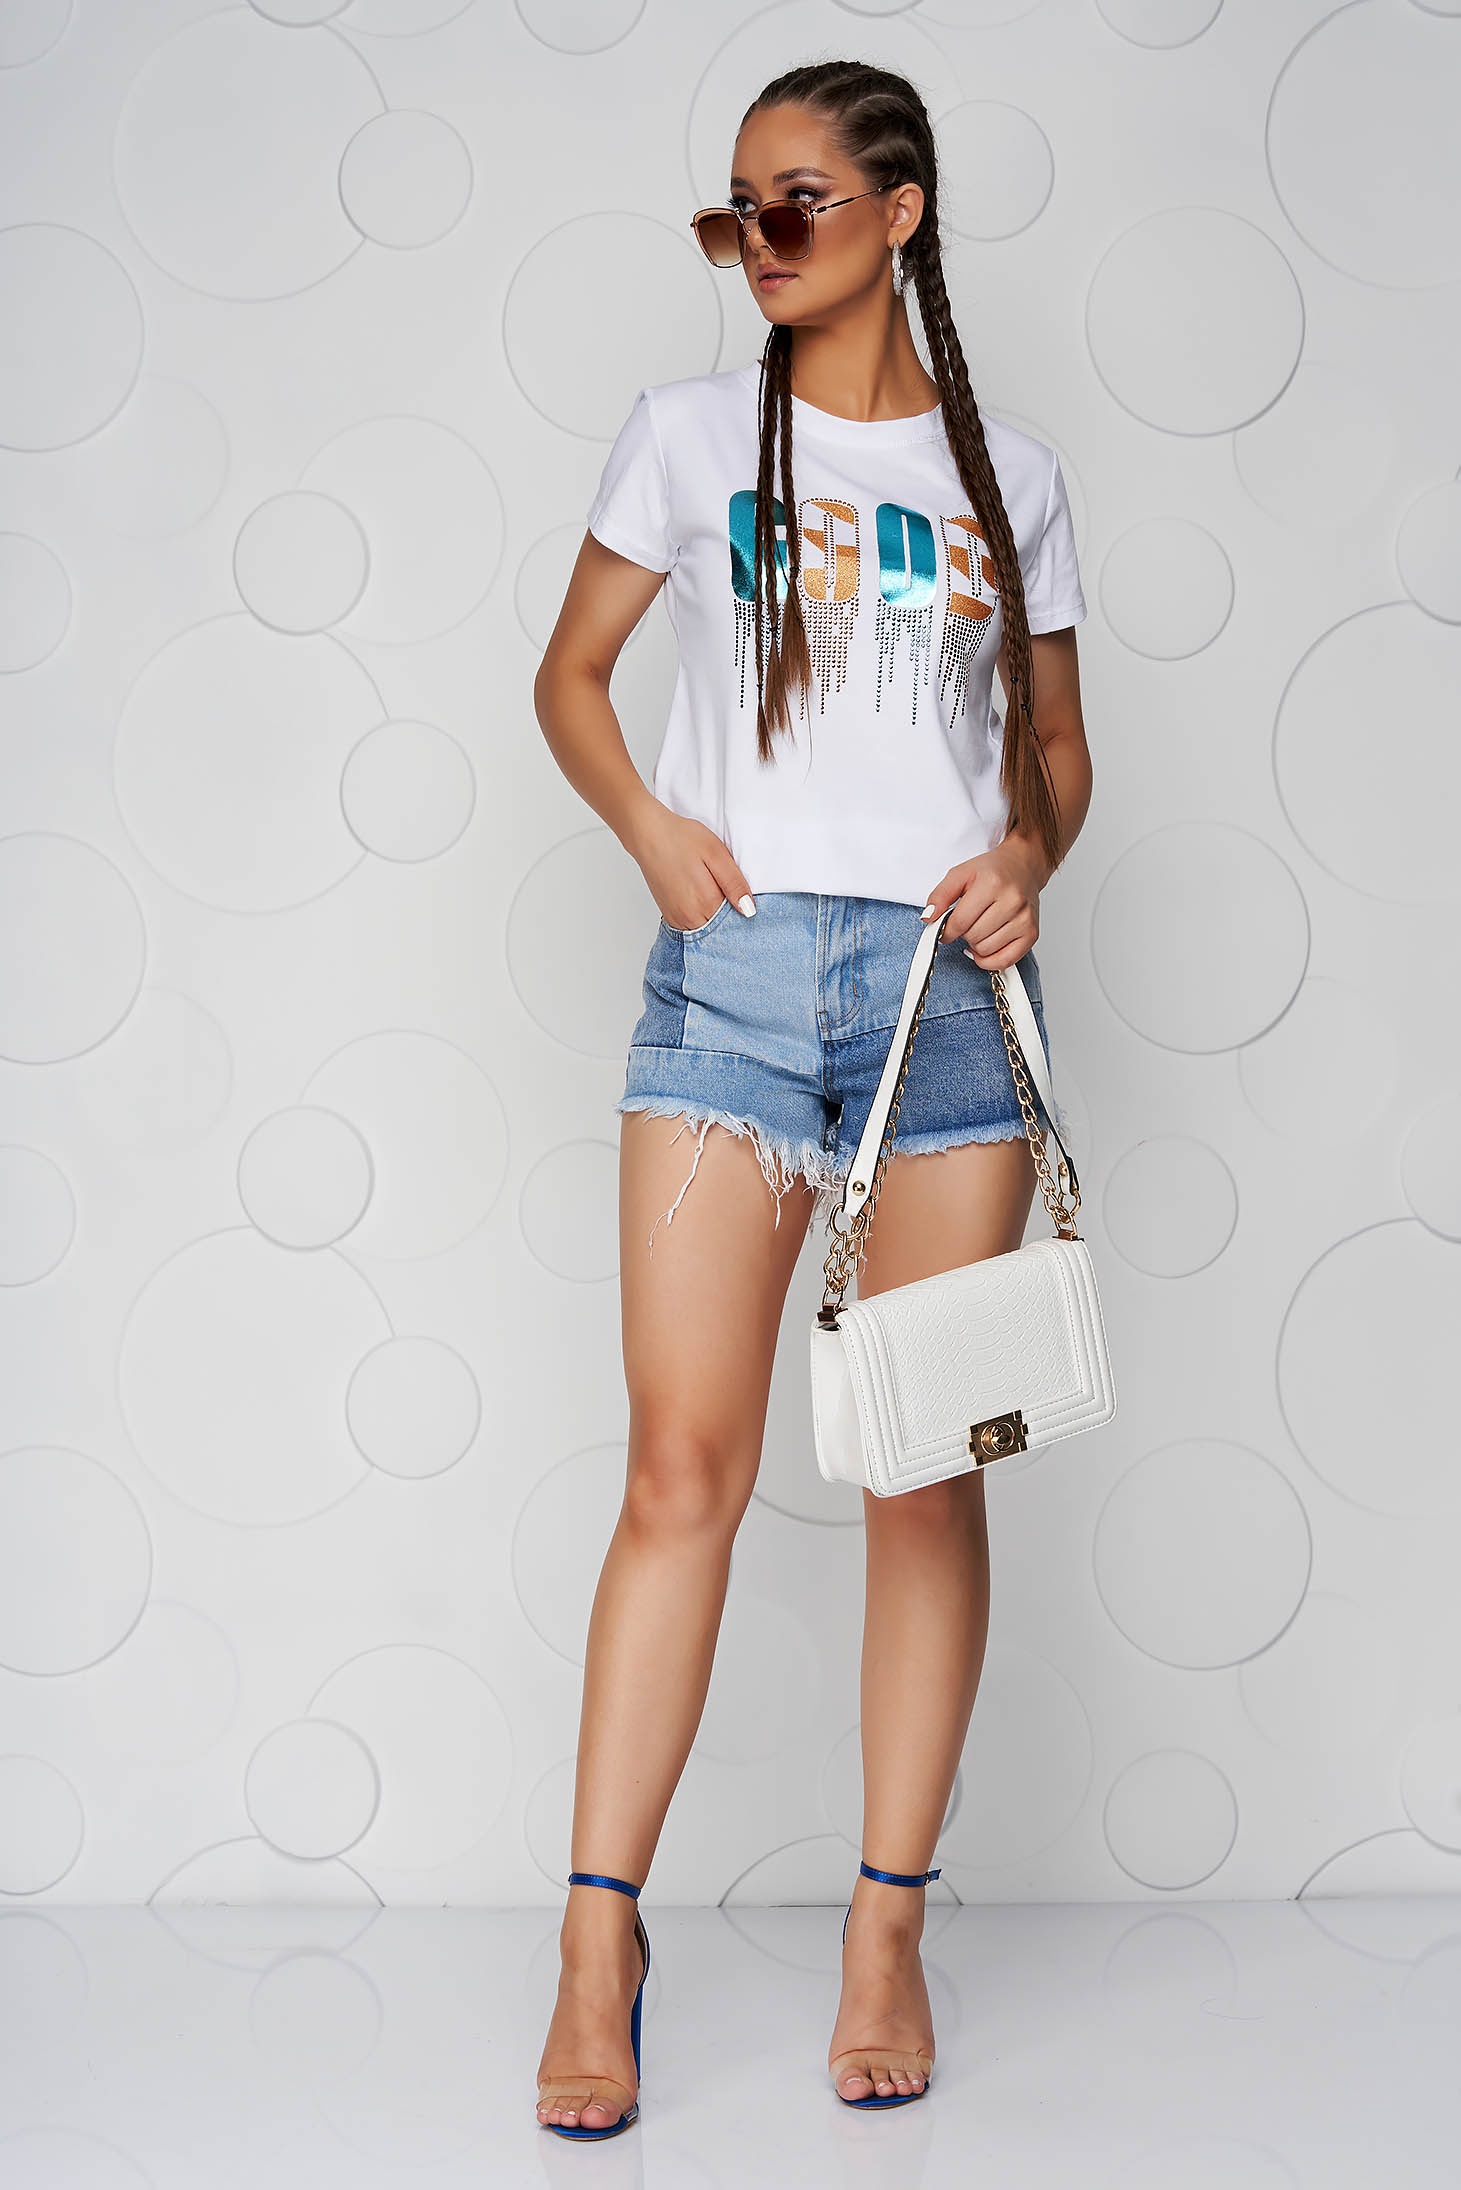 White t-shirt loose fit cotton with rounded cleavage with graphic details